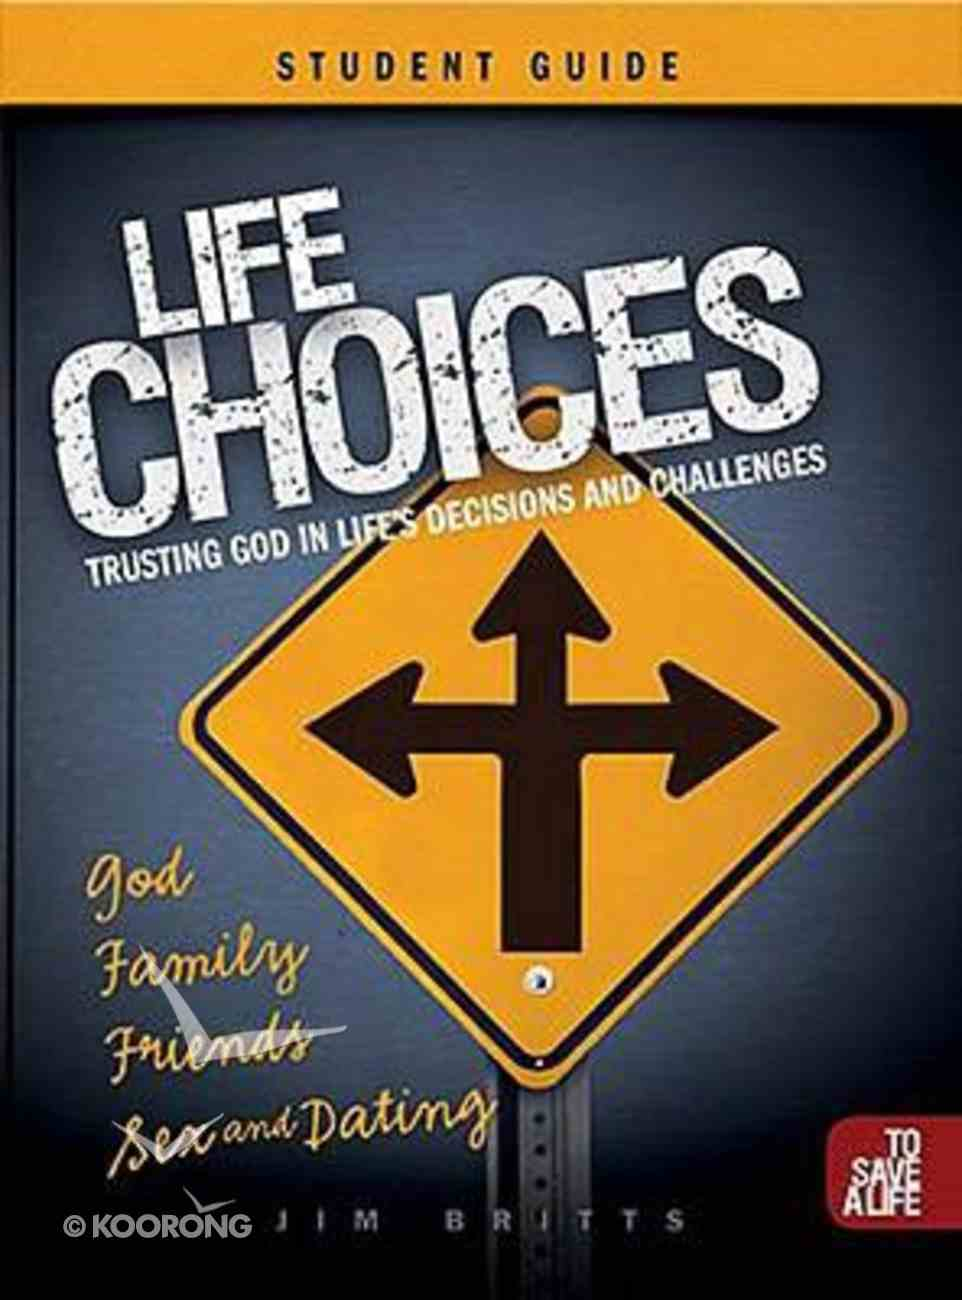 Life Choices: Trusting God in Life's Decisions and Challenges (Student Guide) Paperback